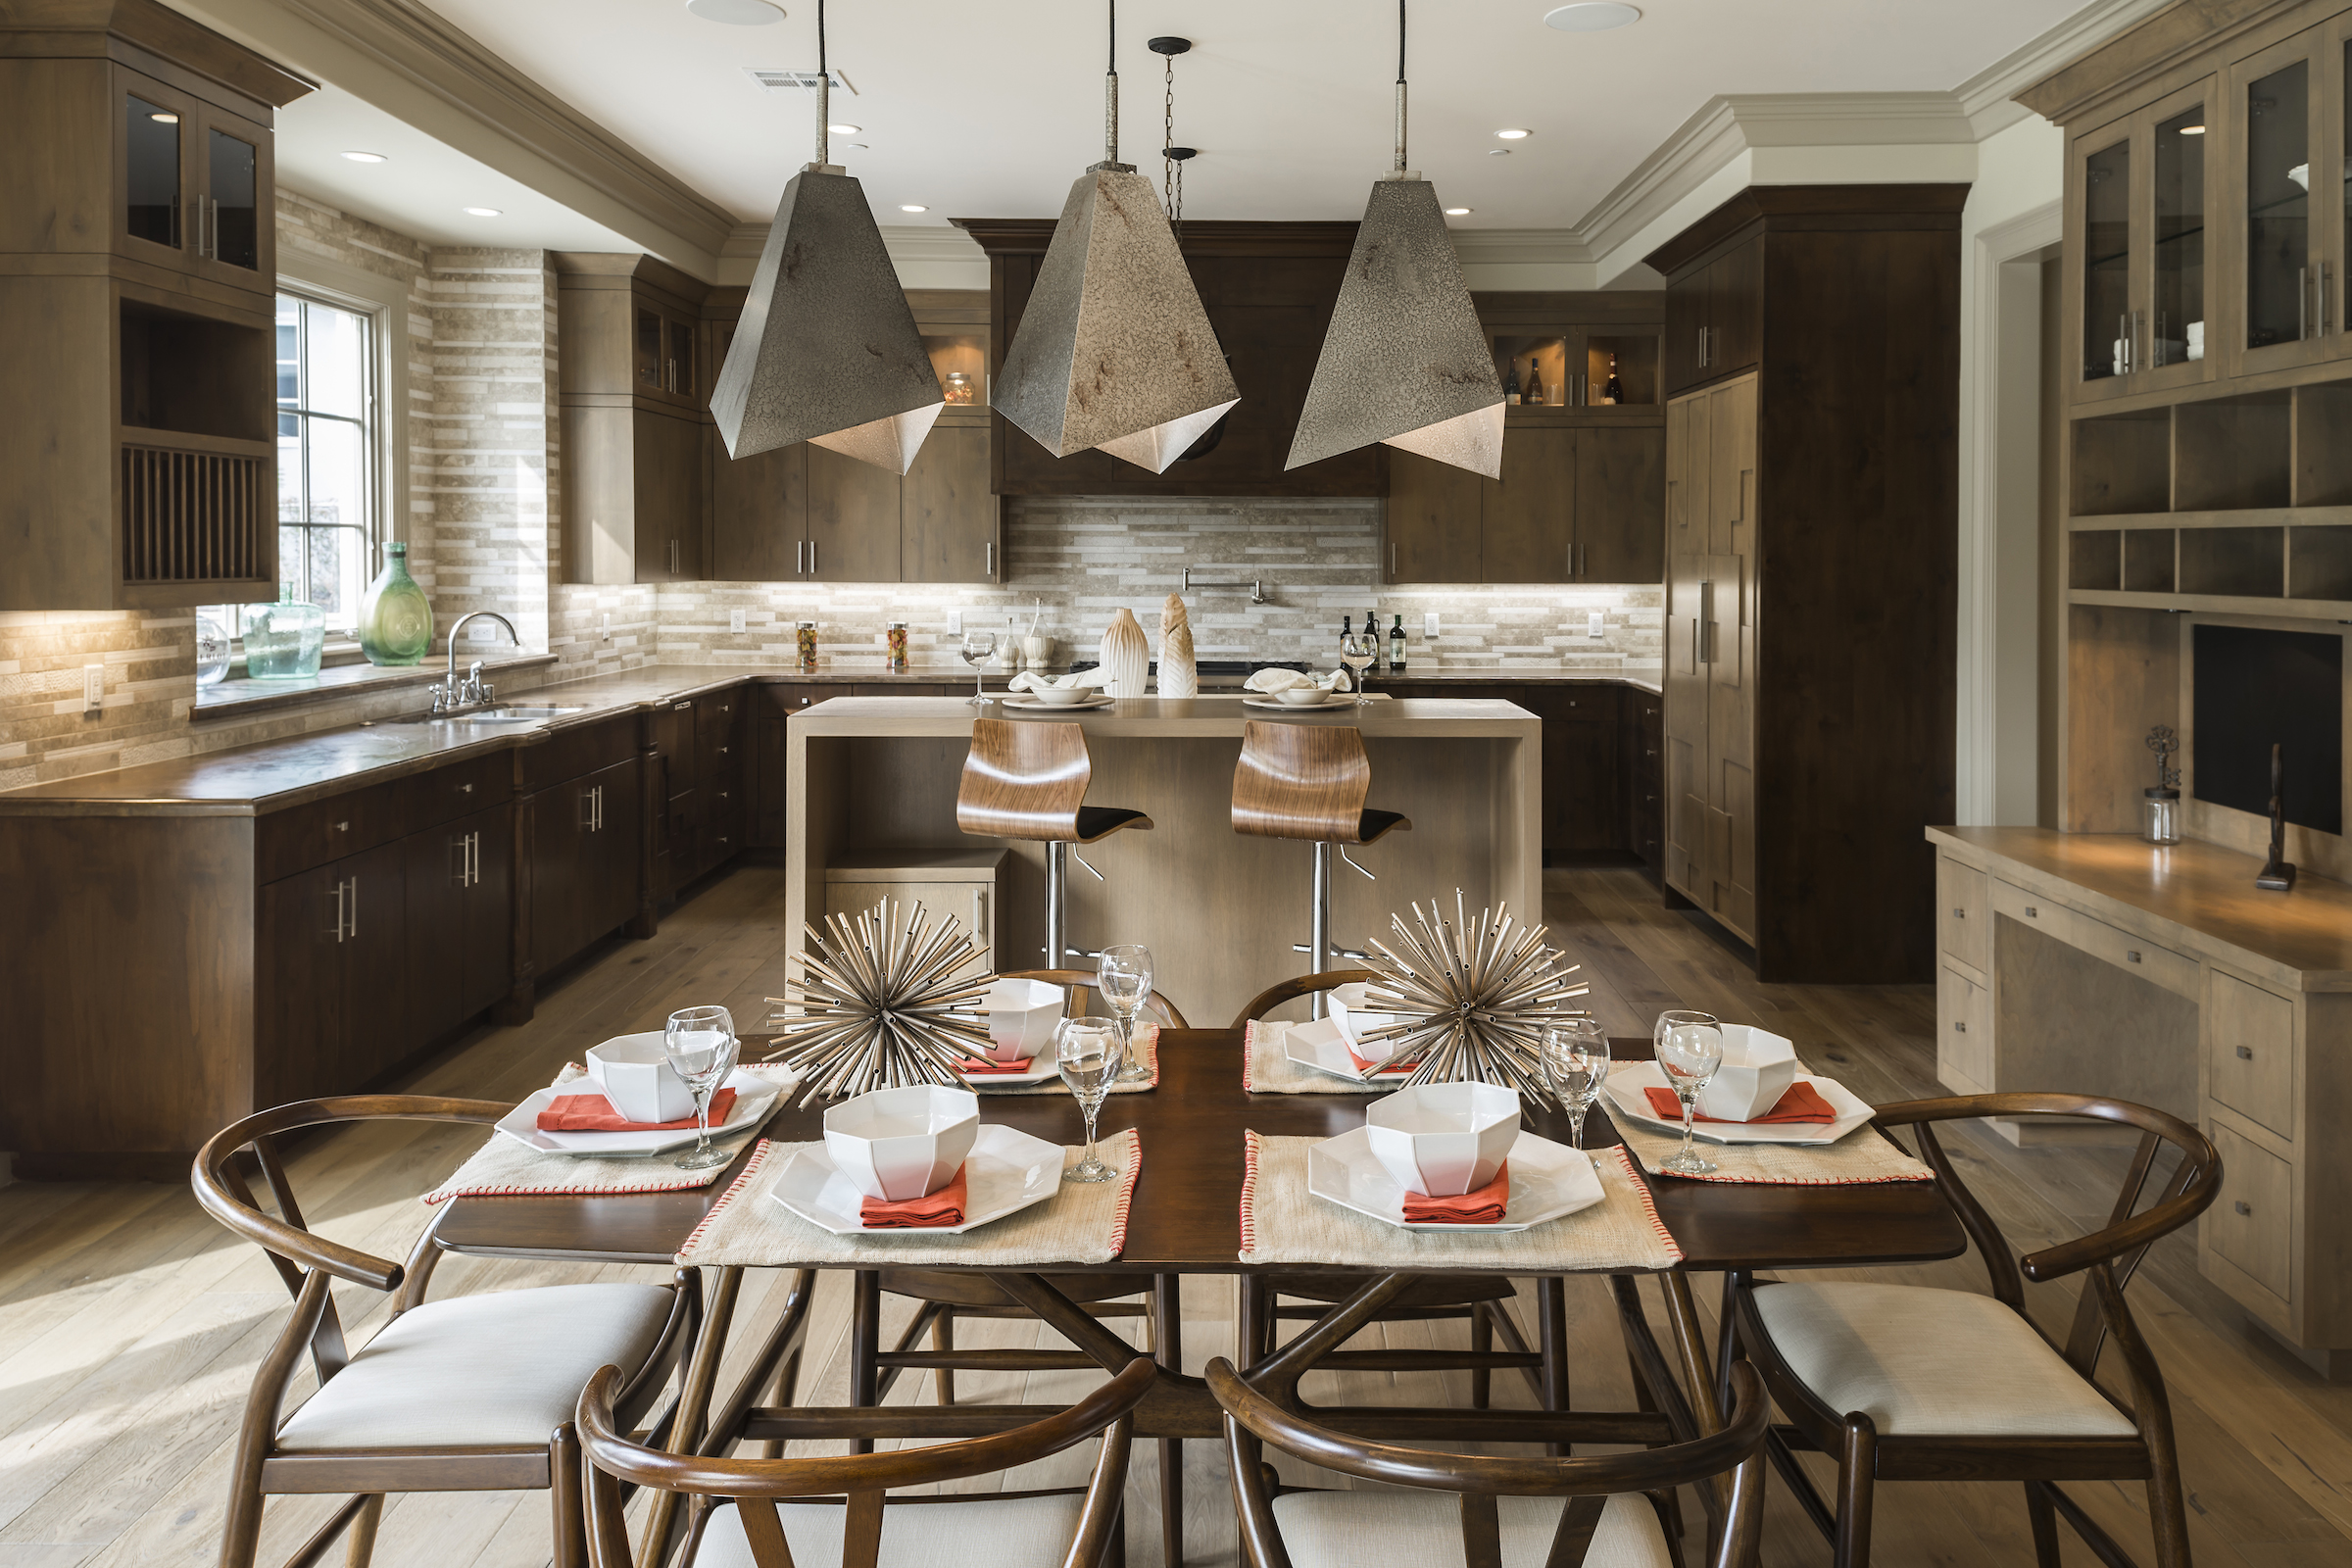 Wood-Tone-Kitchen-Dining-Area.jpg